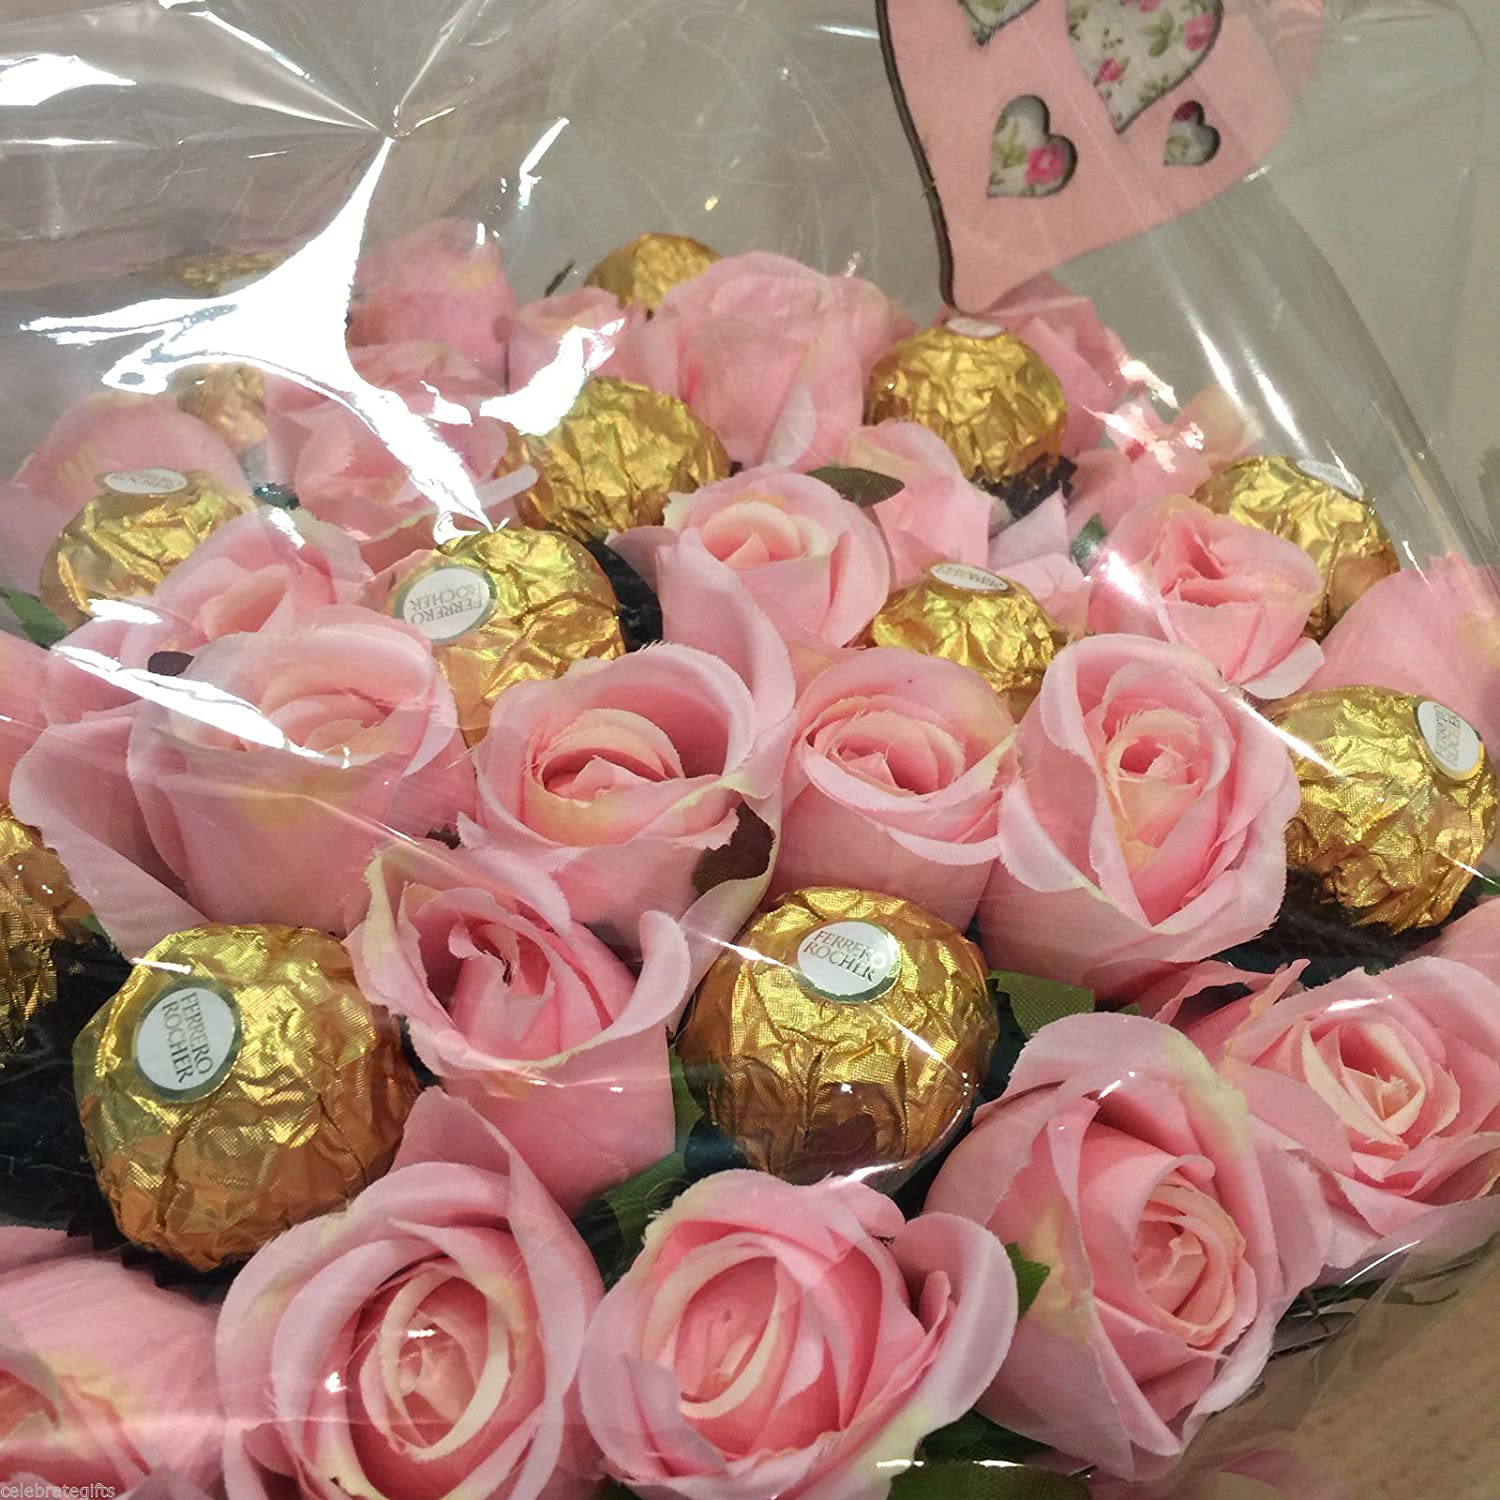 Luxury Silk Pink Roses and Ferrero Rocher Chocolate Bouquet: Amazon ...